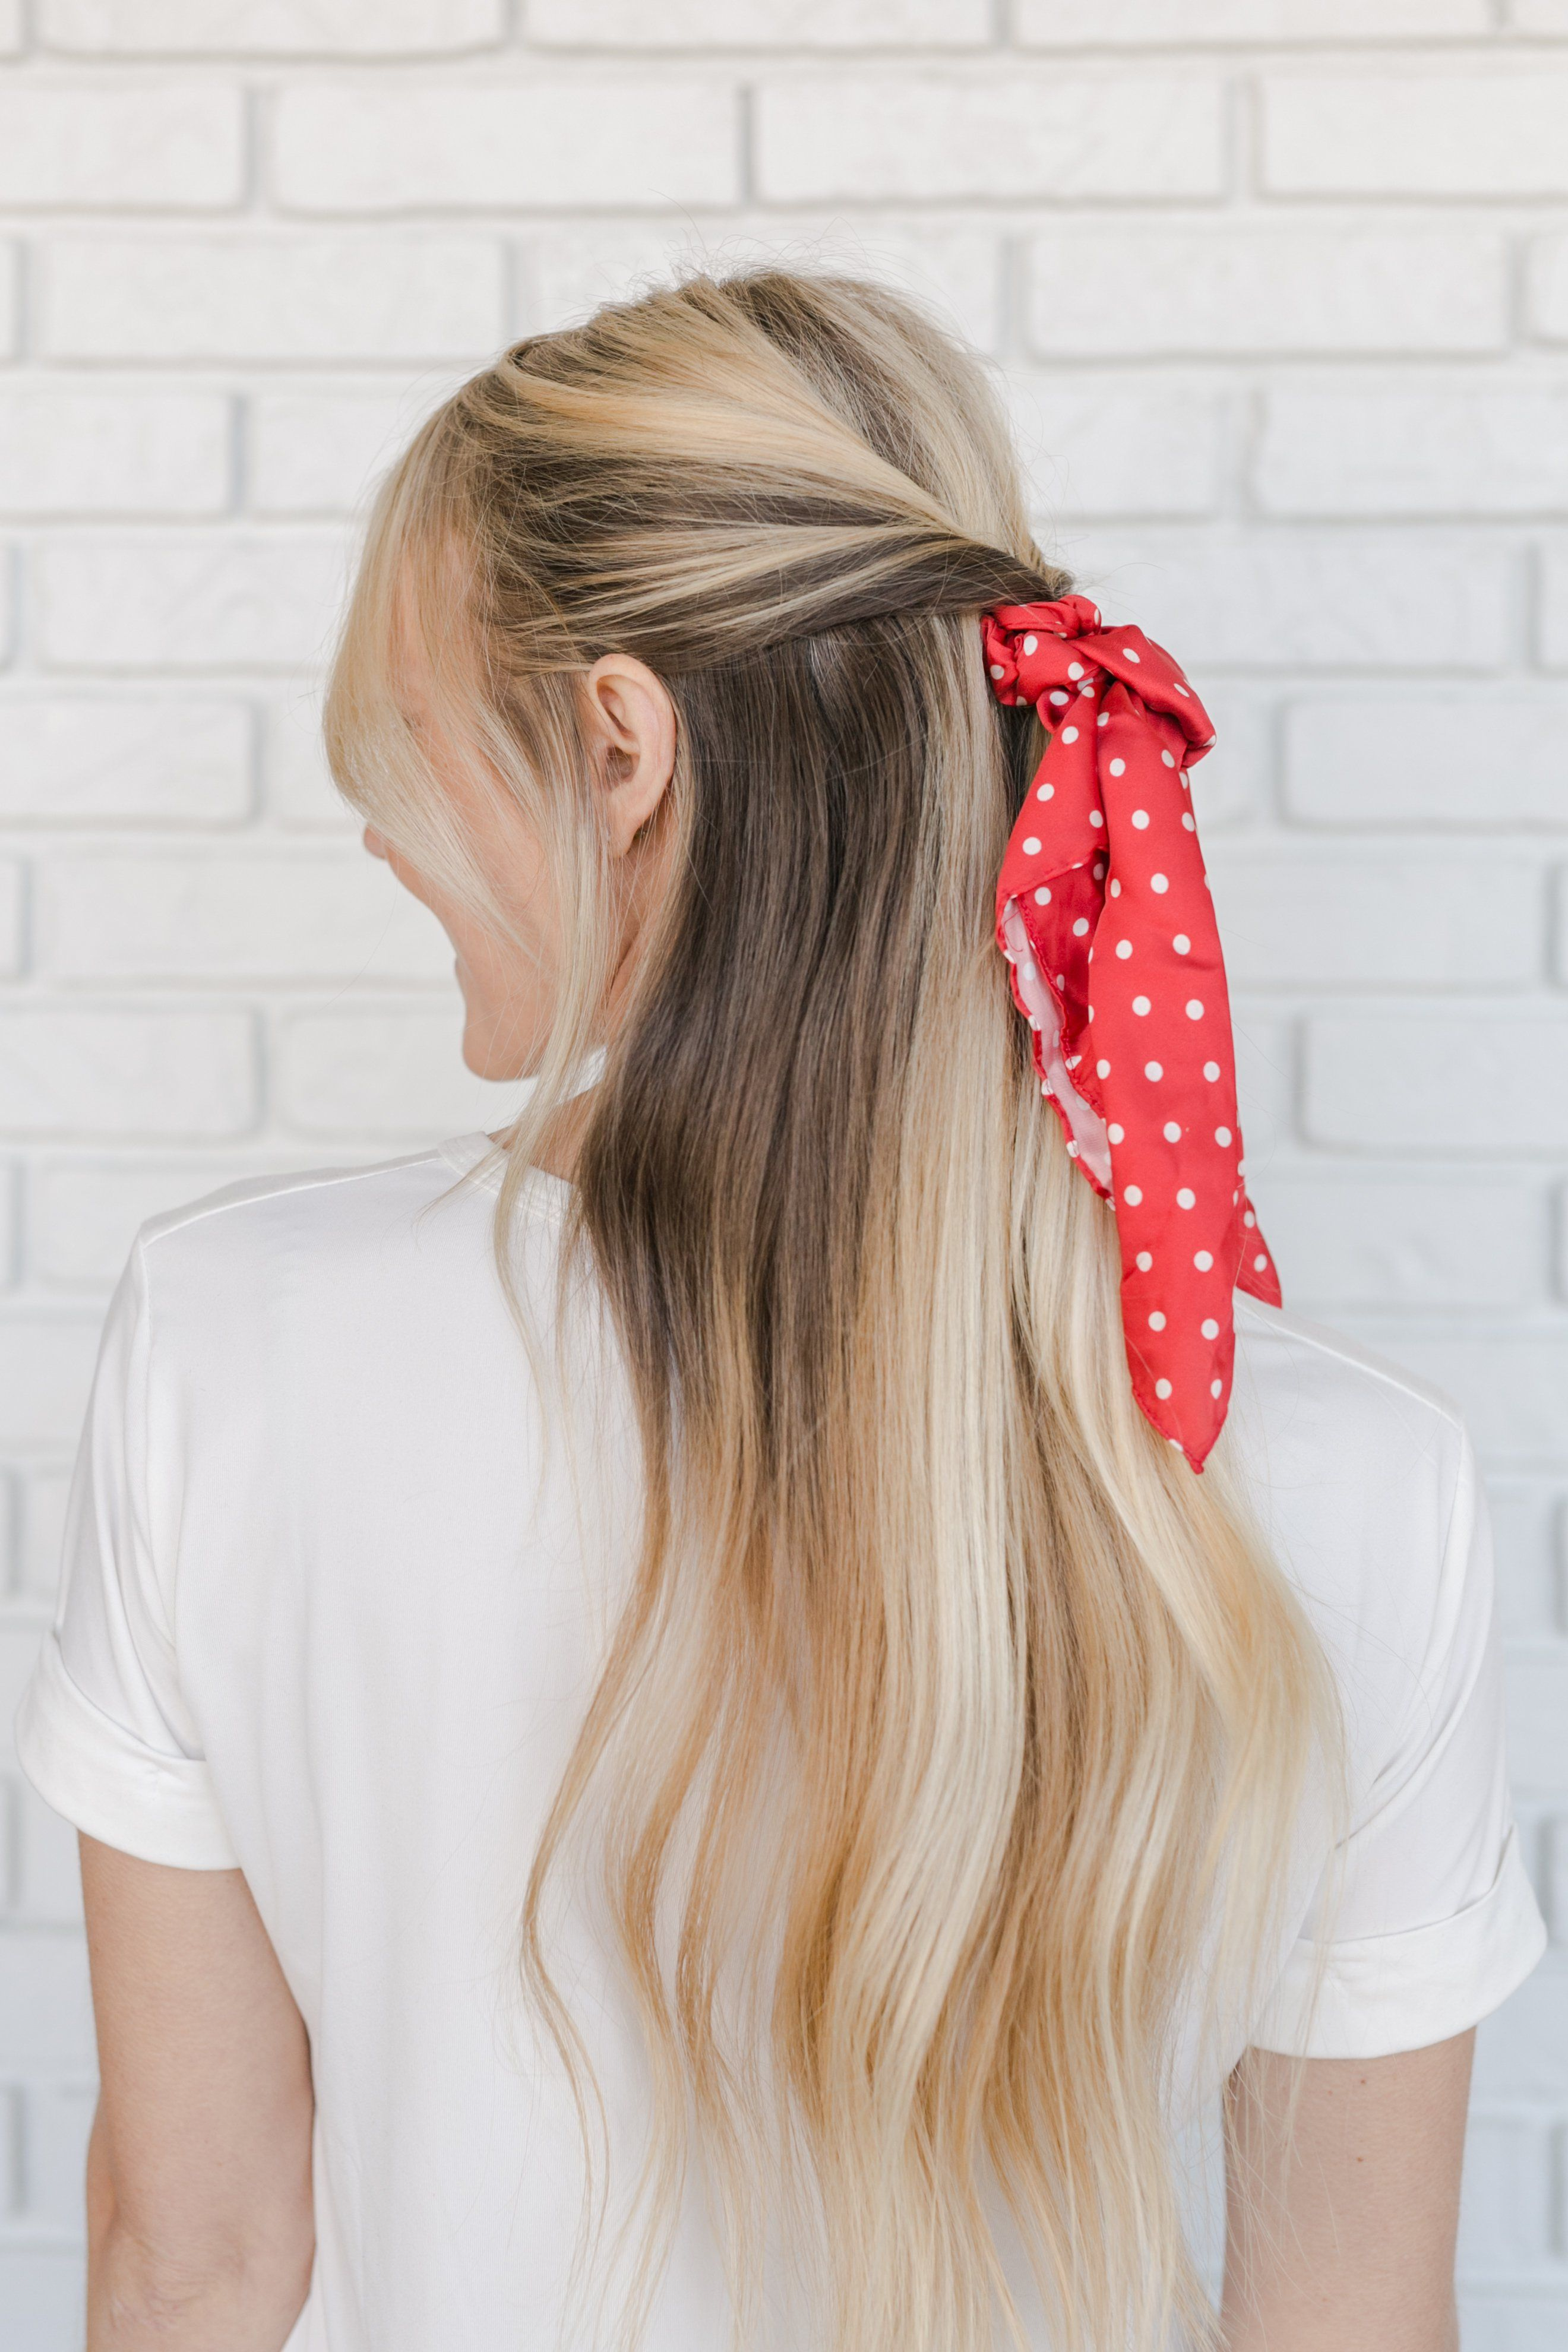 5 Ways To Wear The Scrunchie Trend A Beautiful Mess Easy Hairstyles Simple Prom Hair Scrunchie Hairstyles